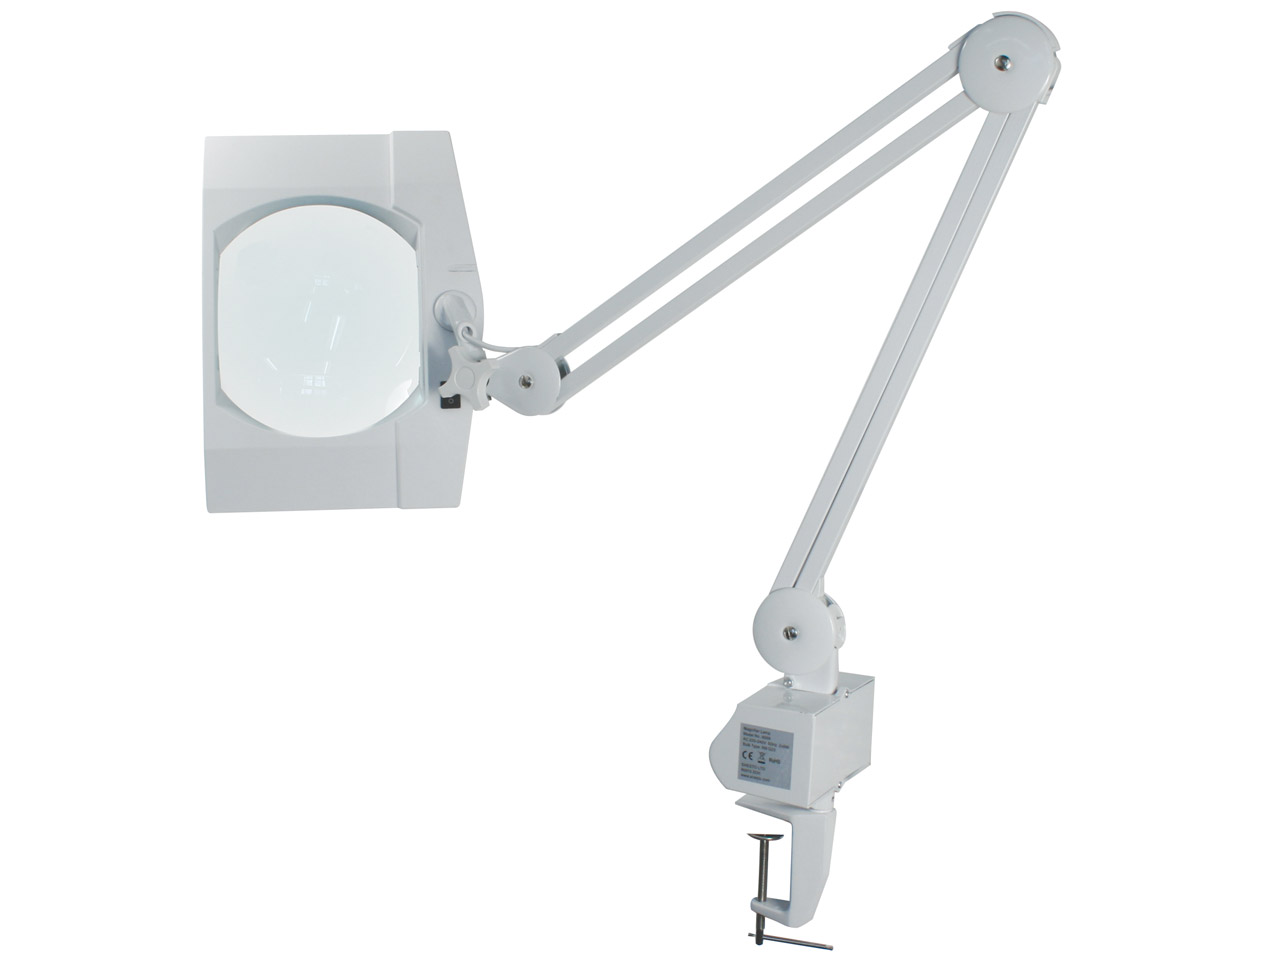 Rectangular Illuminated Magnifying Lamp